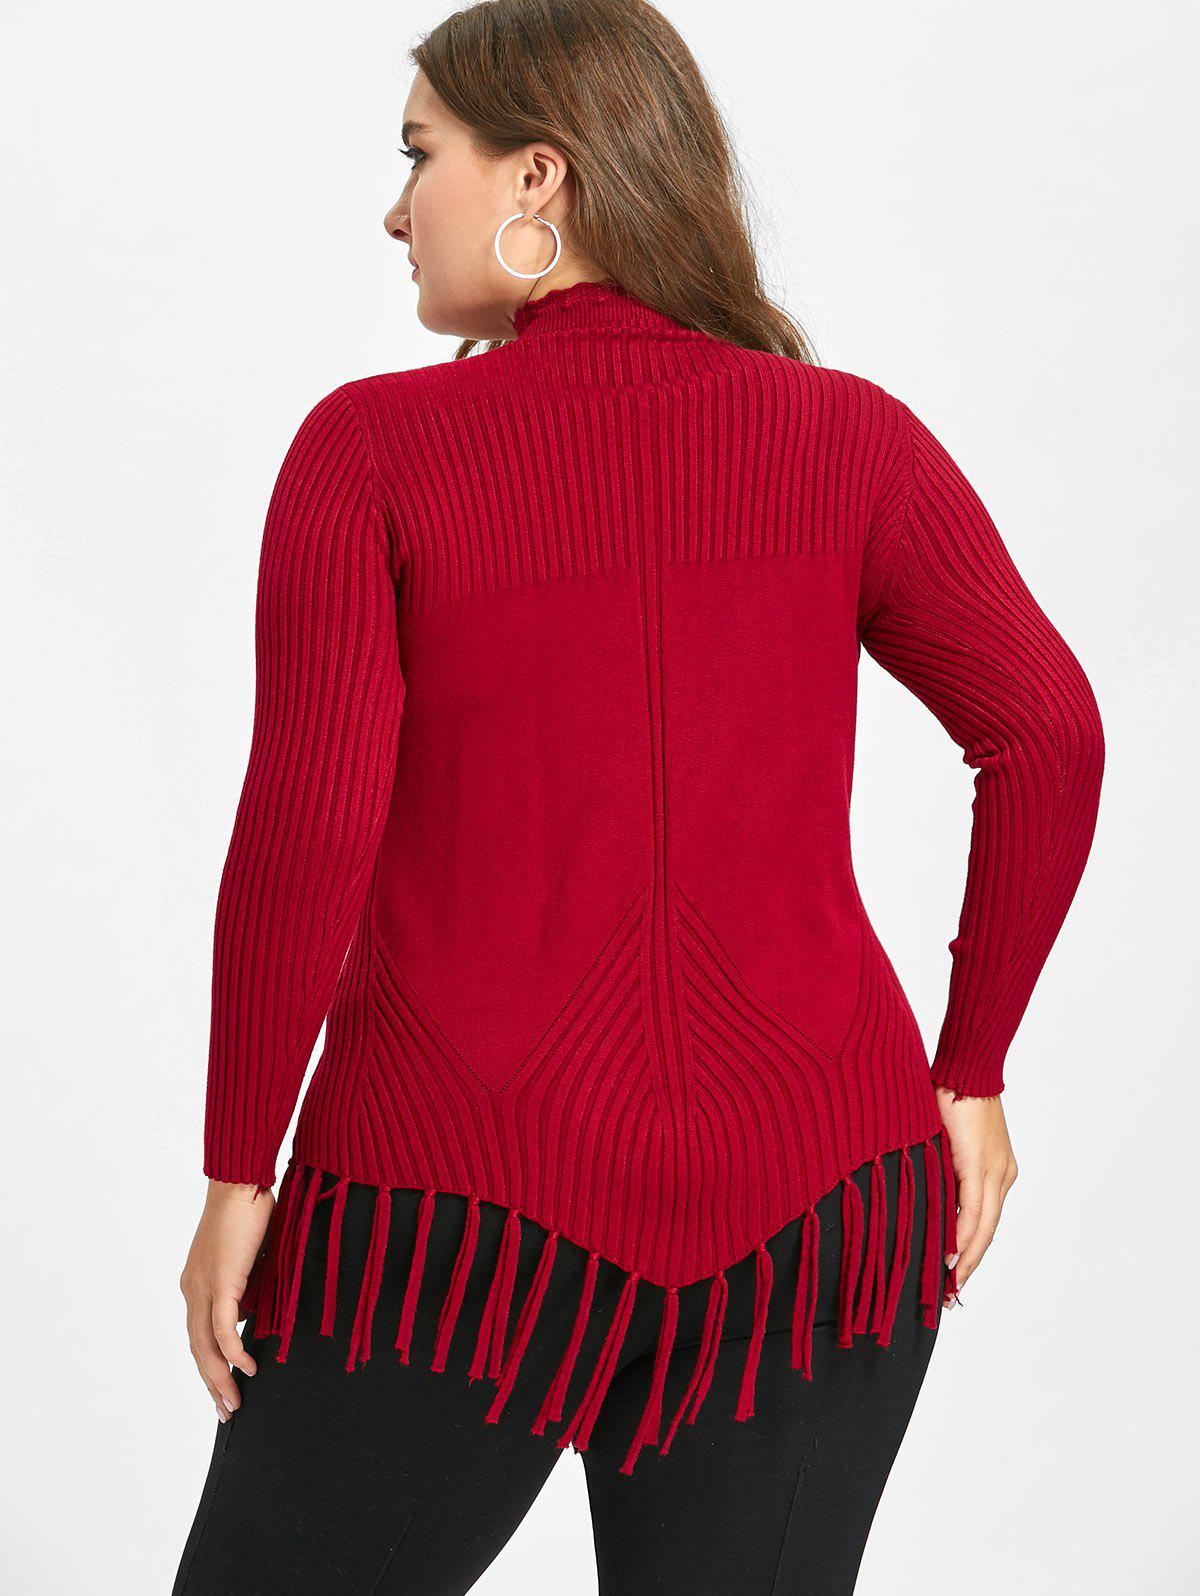 High Neck Fringed Ribbed Plus Size Sweater - RED 4XL